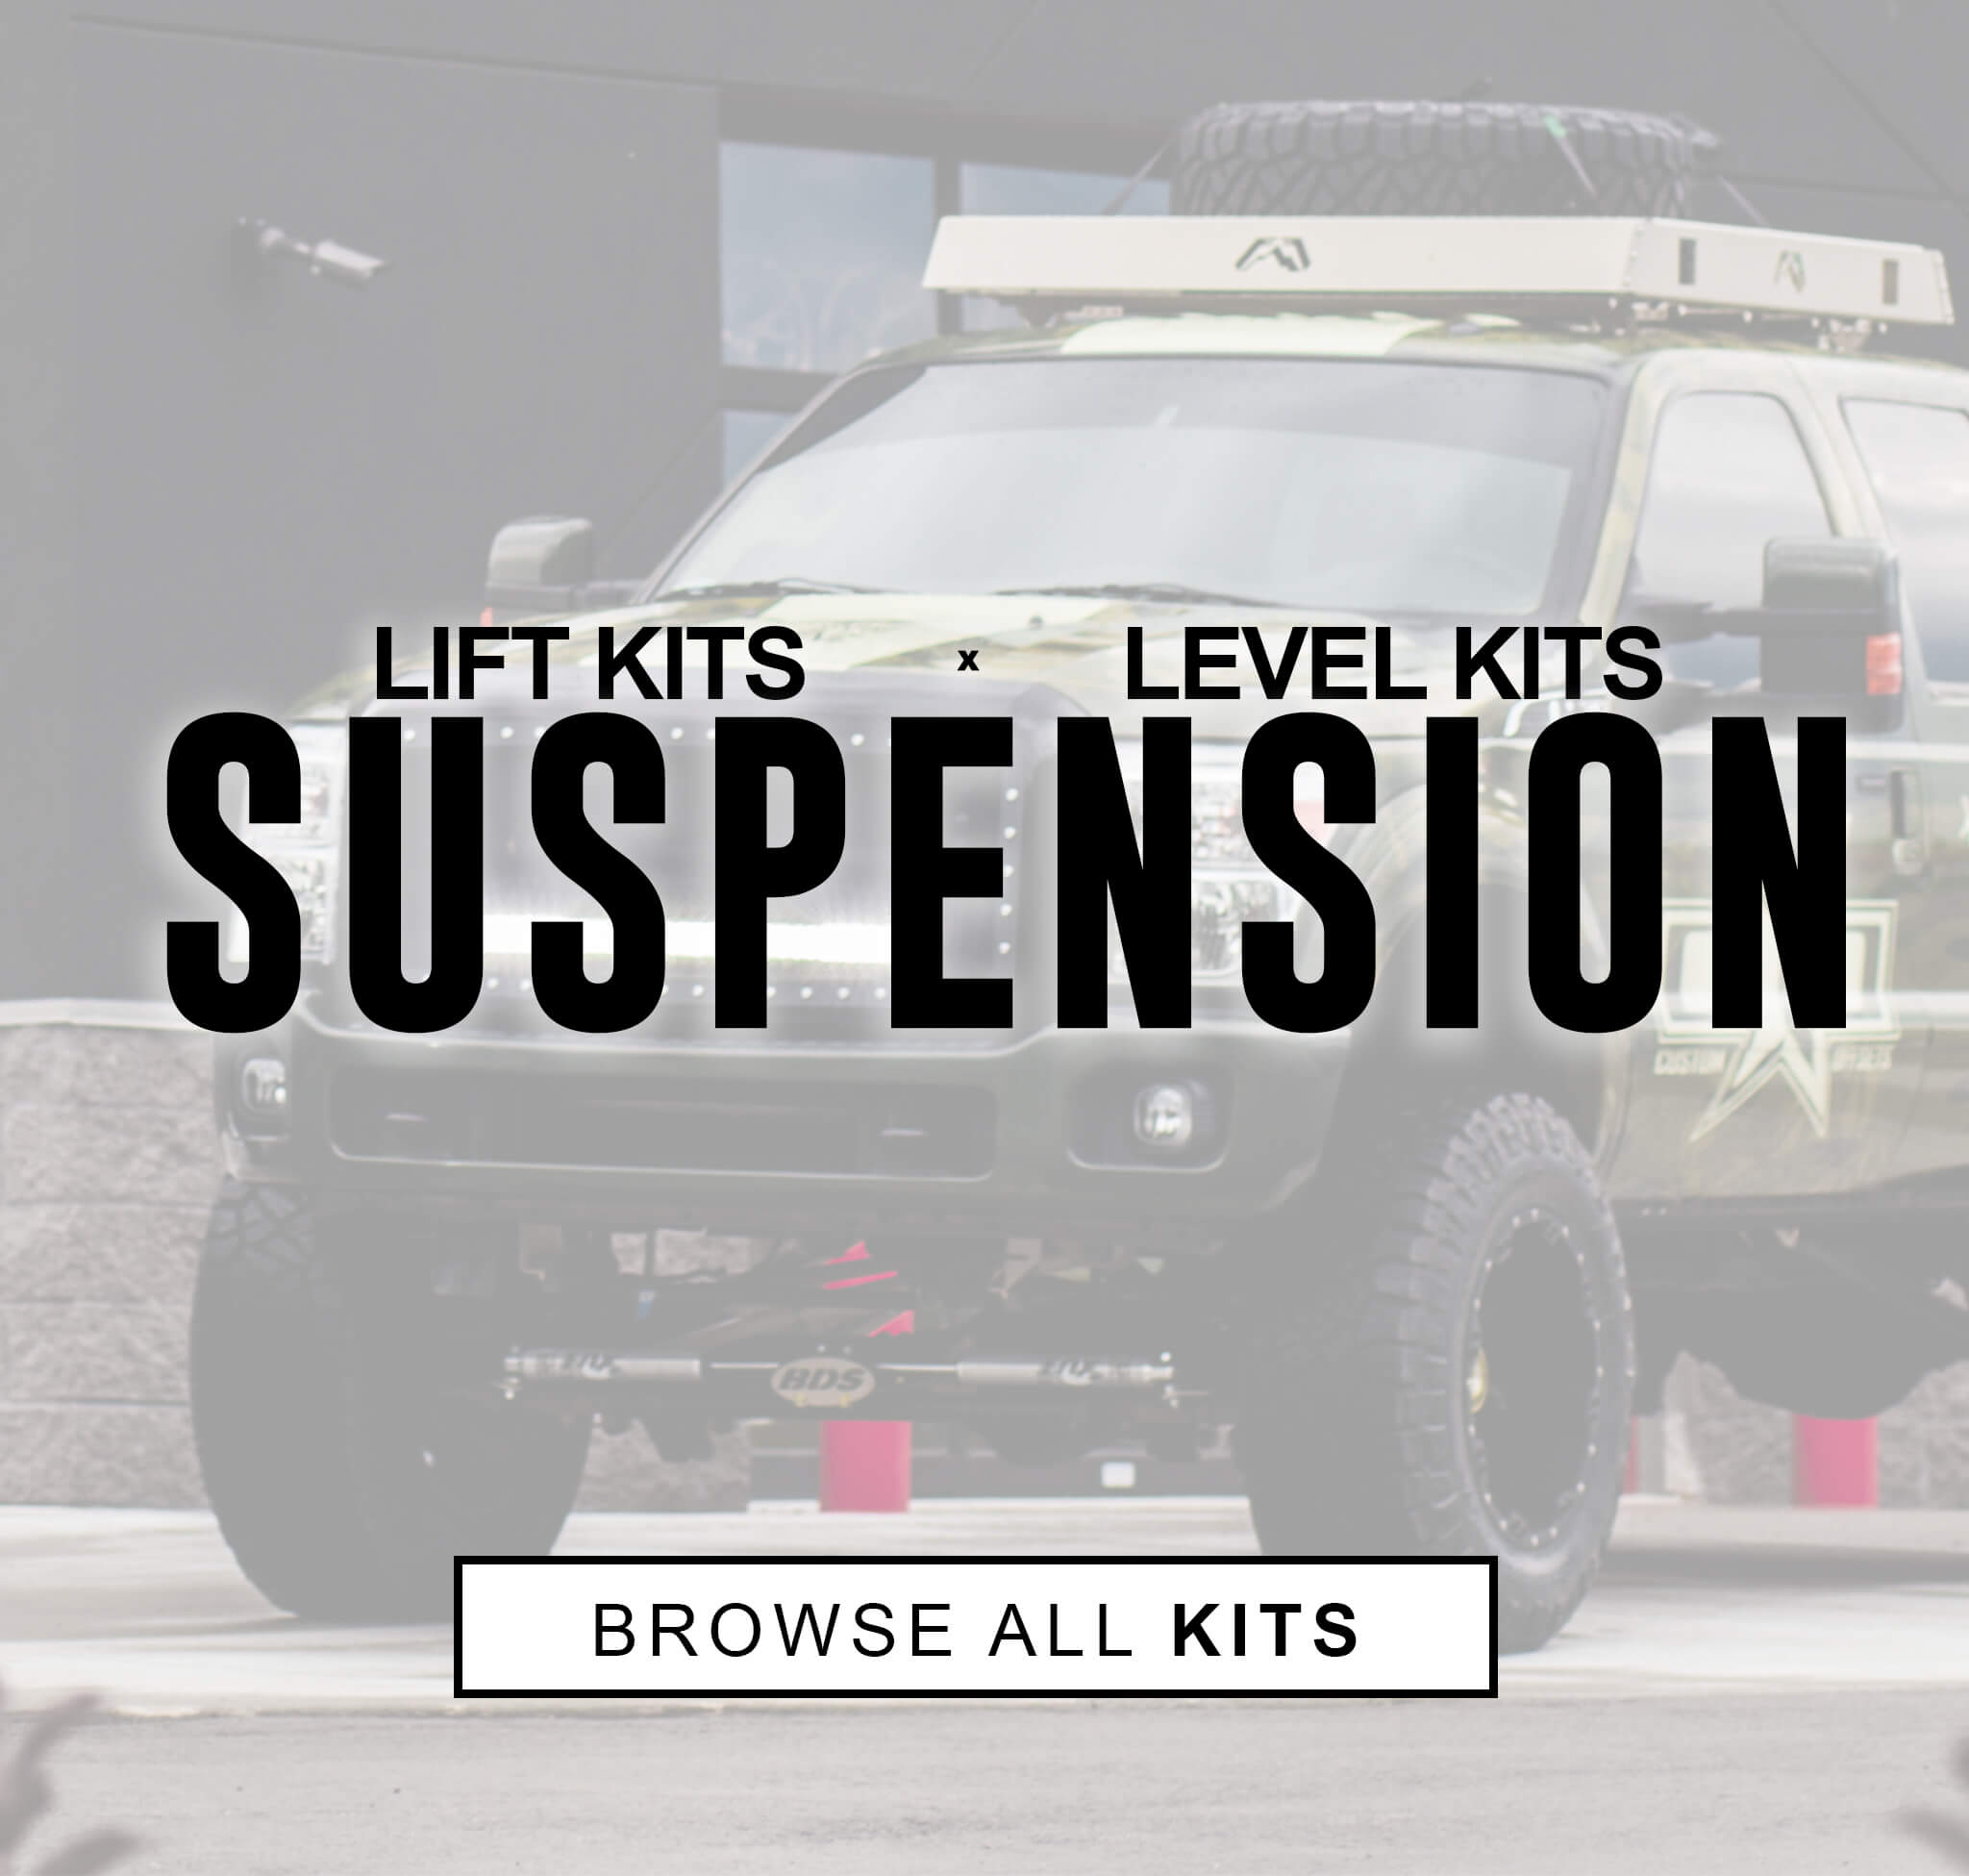 Lift kits, level kits, and more suspension options, Browse all of our kits